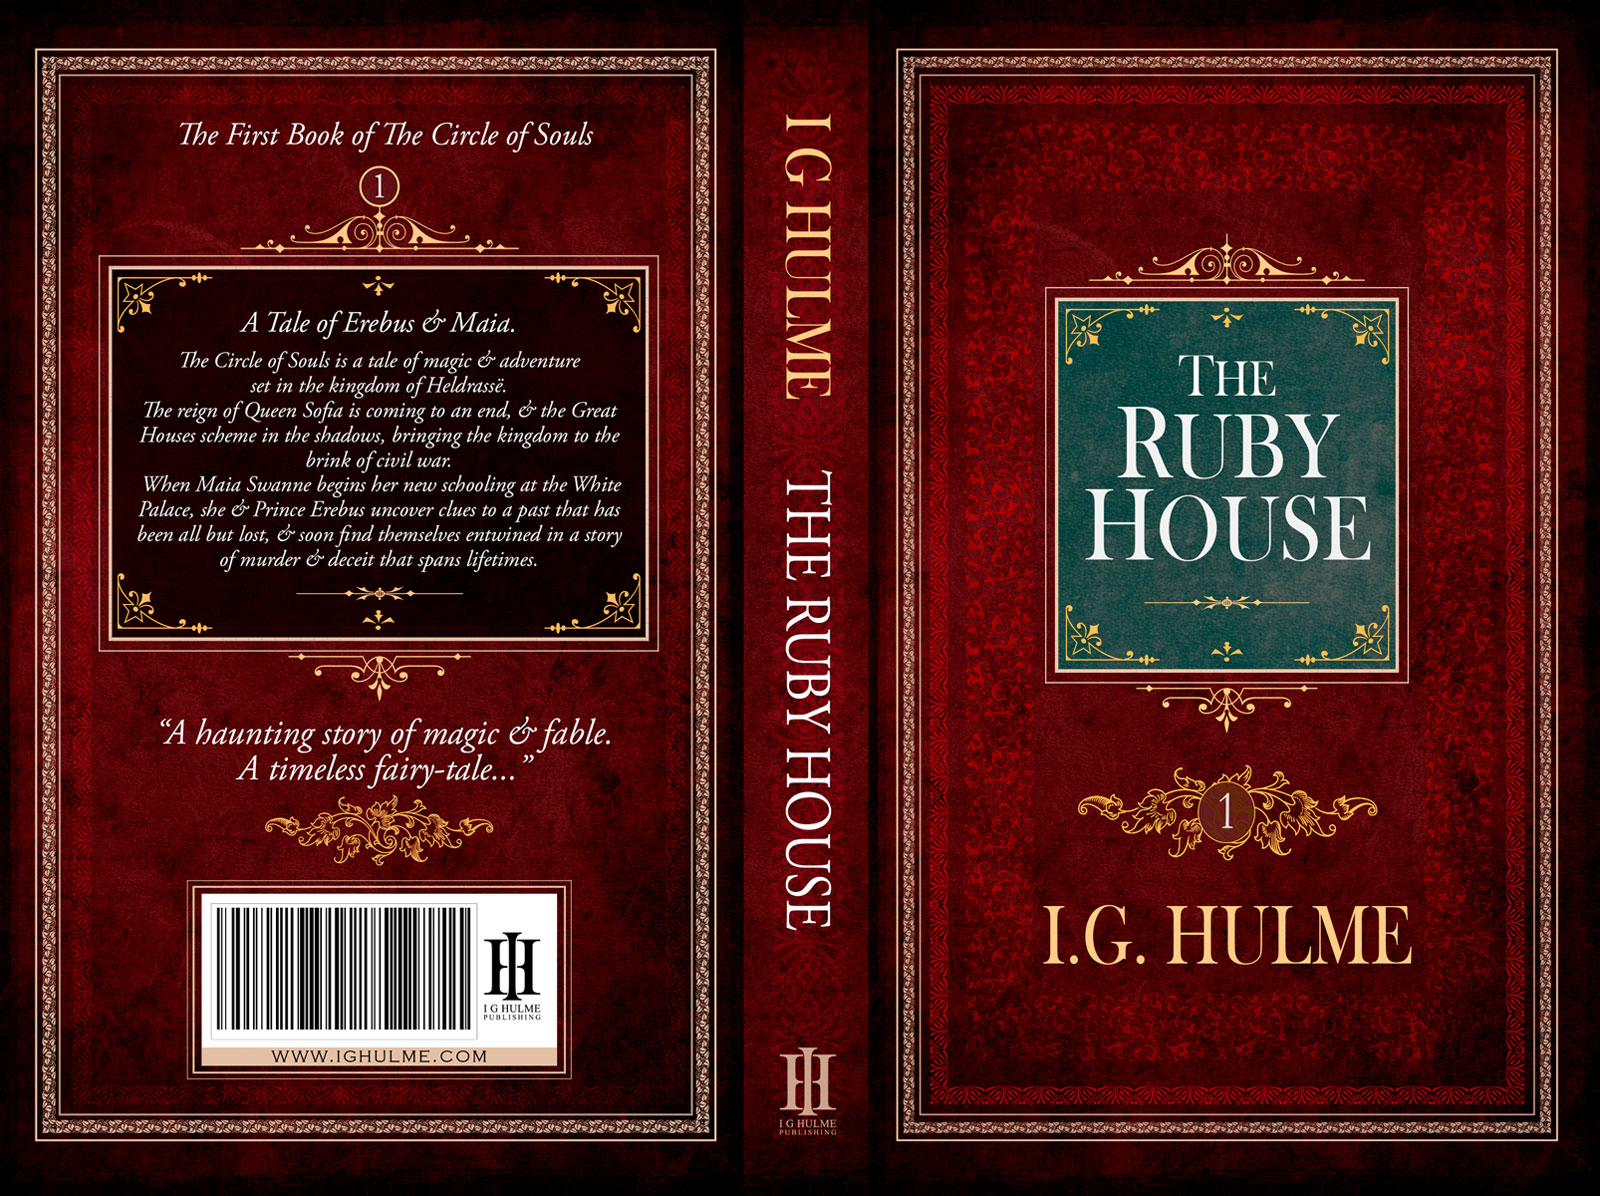 The Ruby House - The first book in the Circle of Souls series by I.G. Hulme